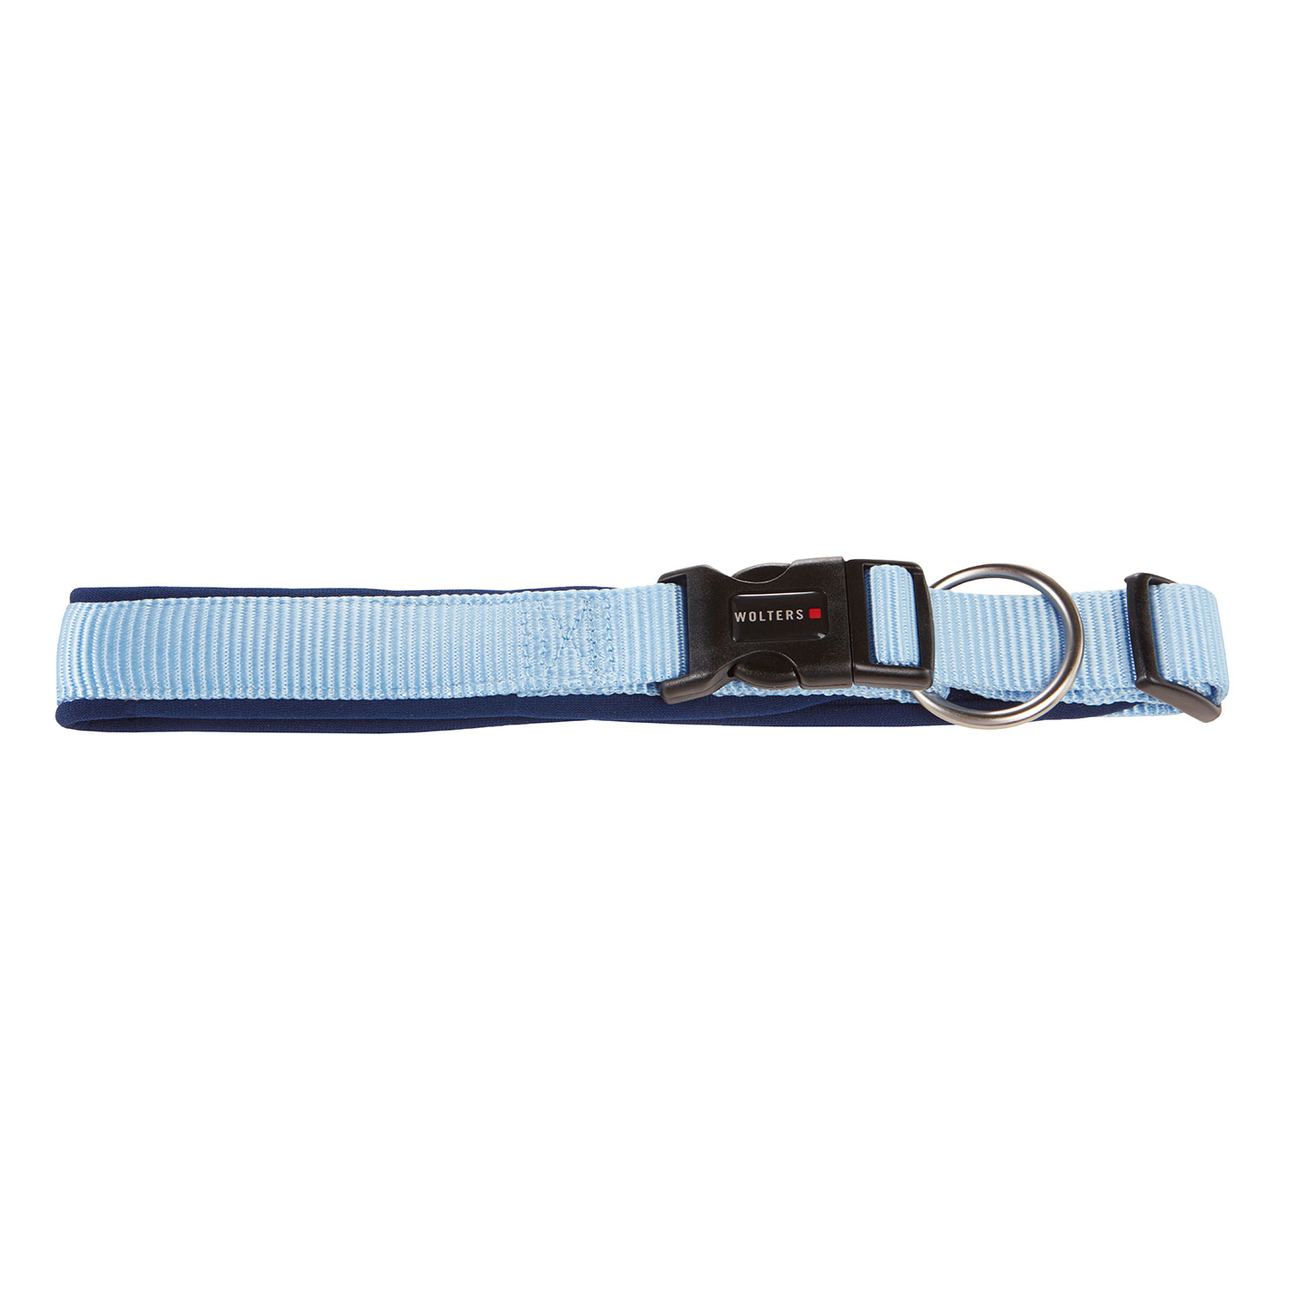 Wolters Halsband Professional Comfort Extra breit